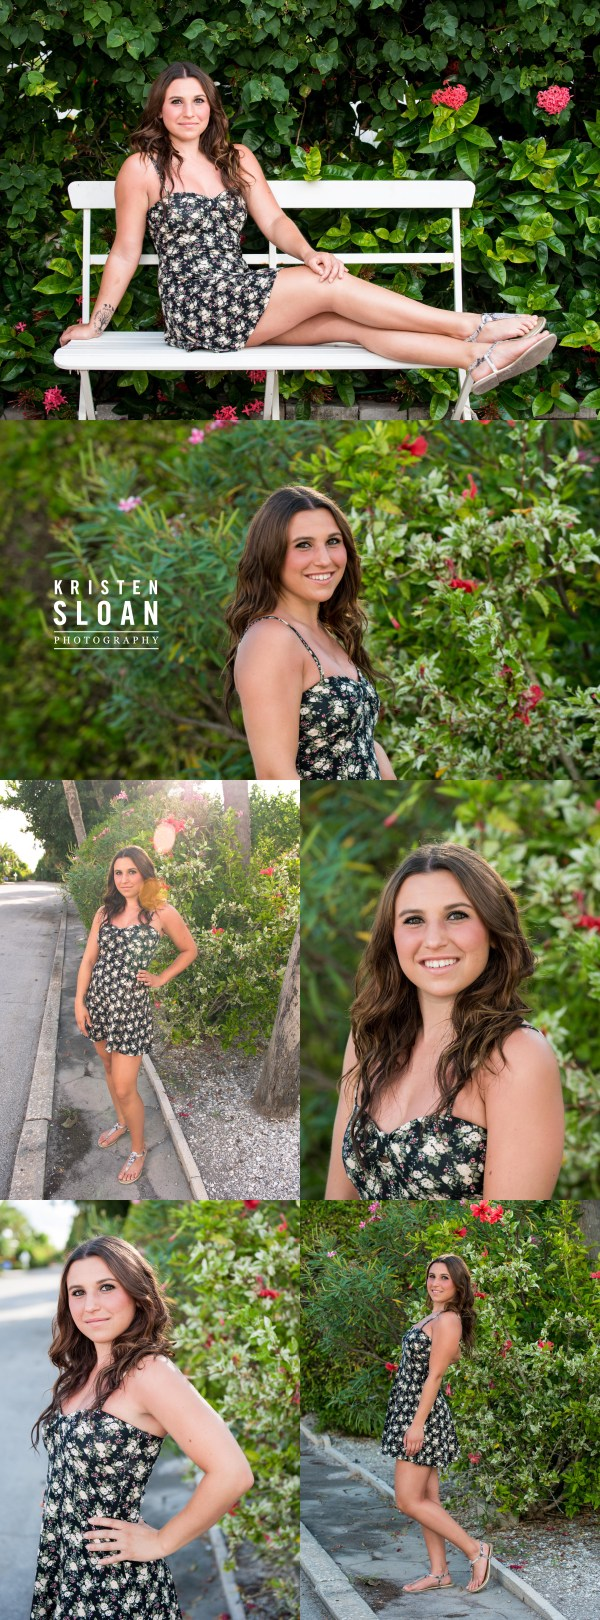 Pass A Grille St Pete Beach Senior Portrait Photos by Kristen Sloan Photography